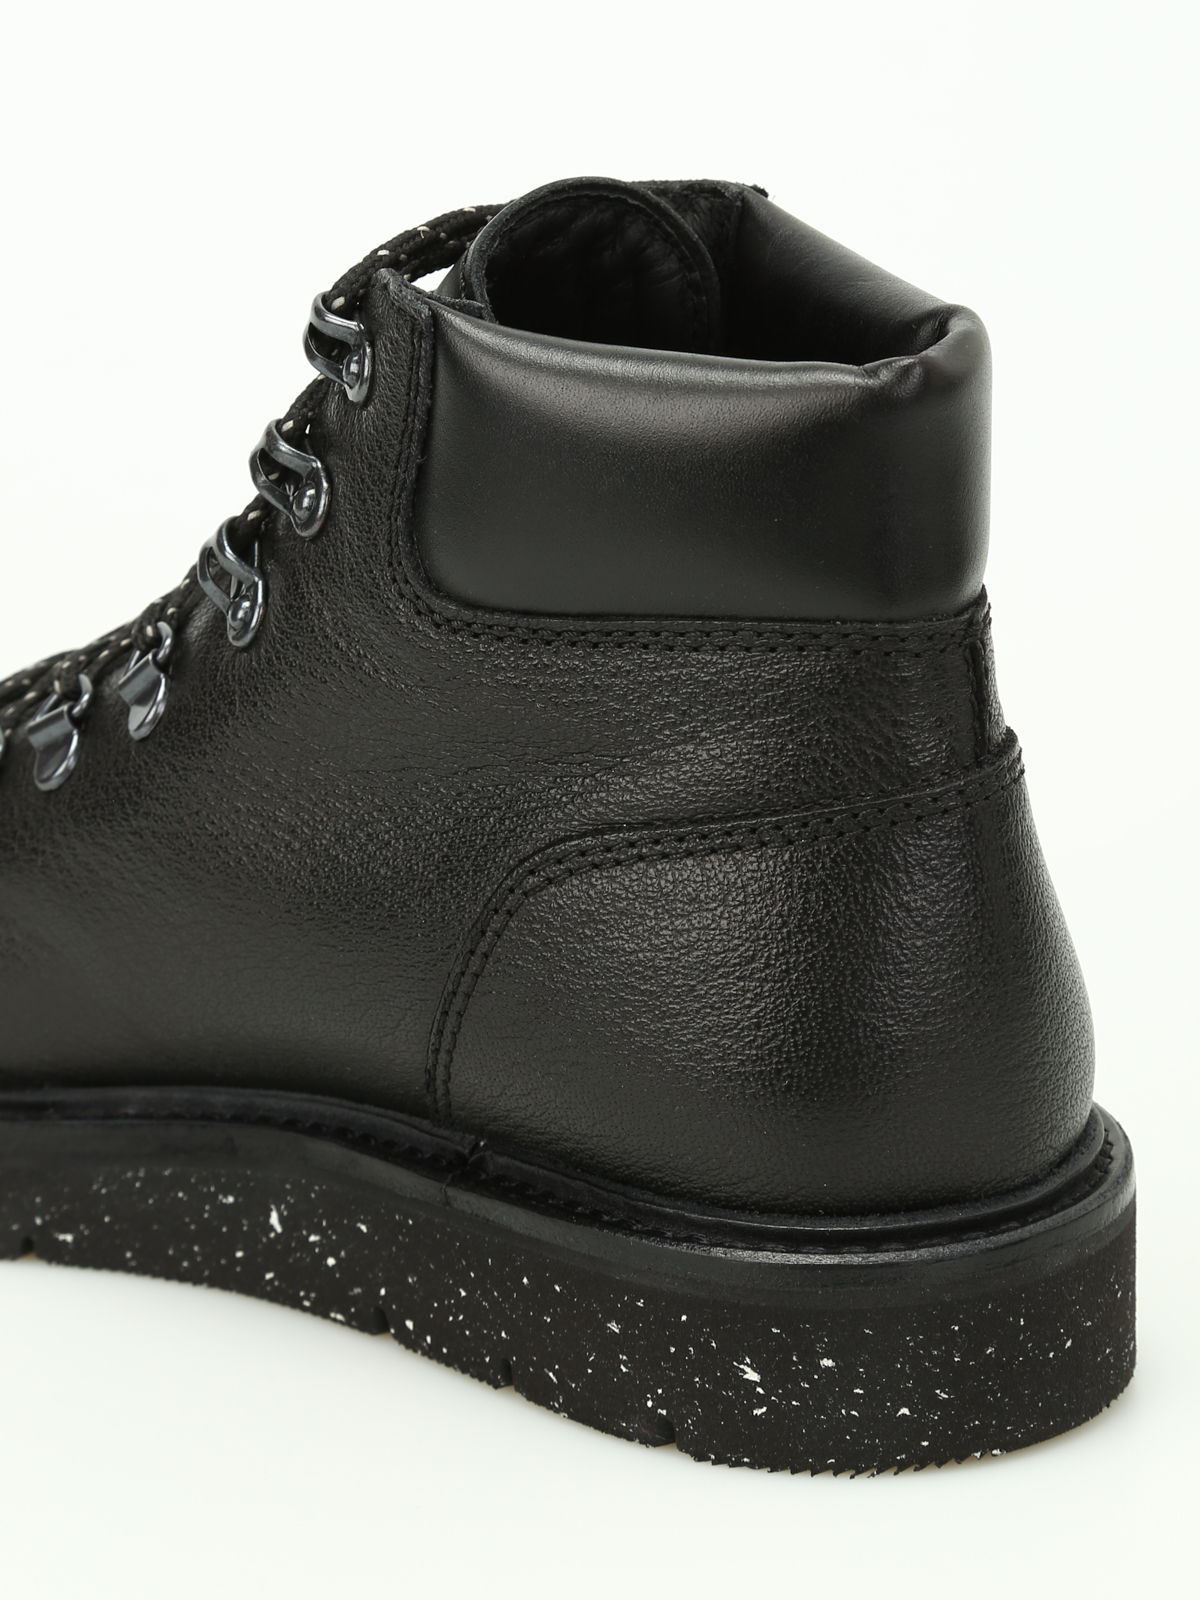 Hogan - H334 grainy leather hiking boots - ankle boots ...